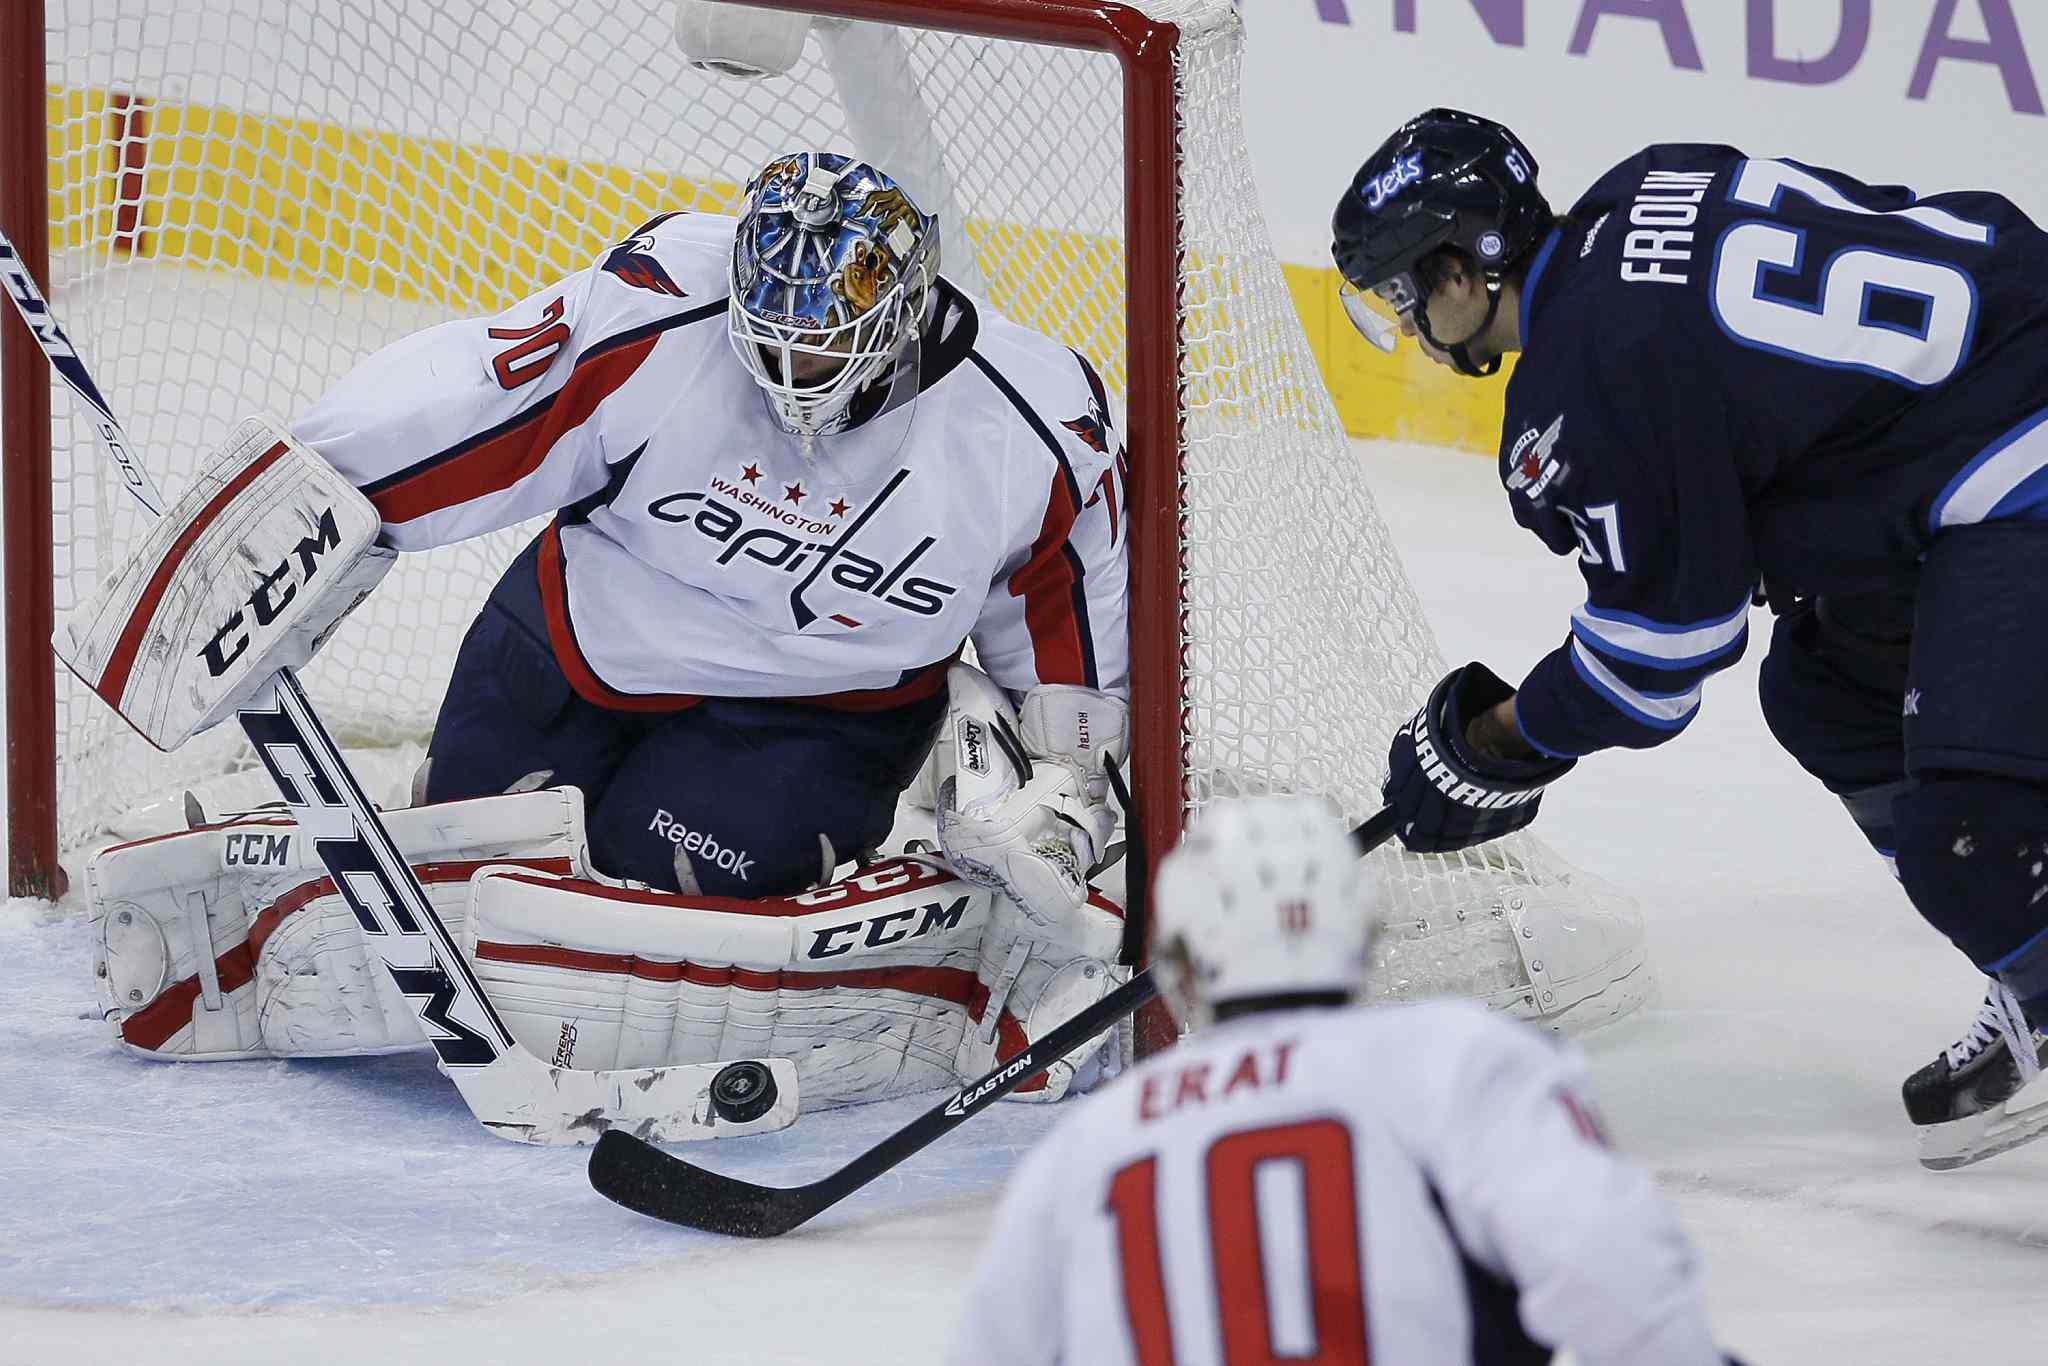 Washington Capitals goaltender Braden Holtby makes a save on a close-in scoring chance by Winnipeg Jets forward Michael Frolik during first-period NHL action at the MTS Centre in Winnipeg Tuesday.